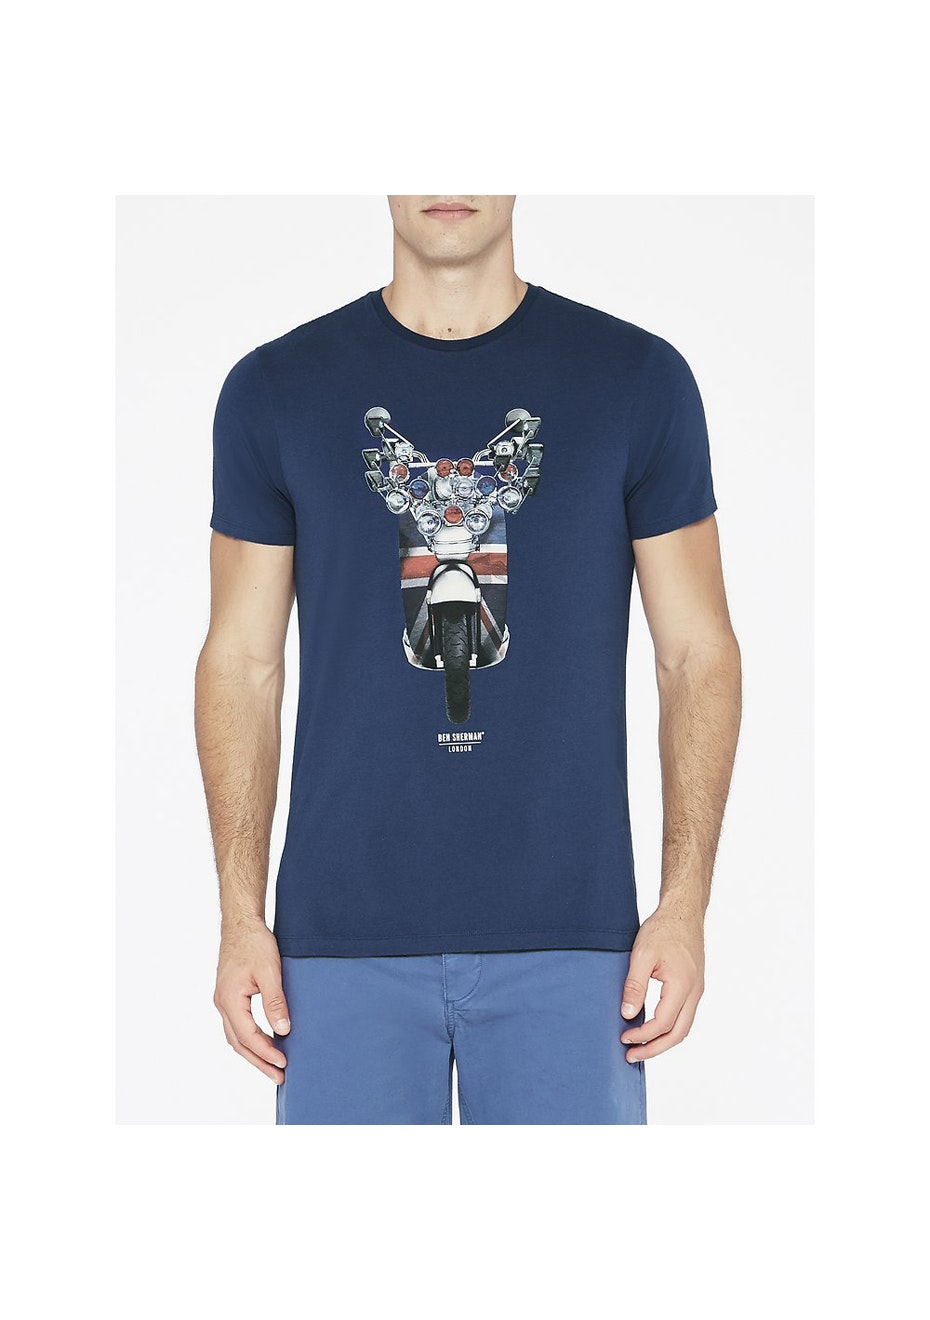 Ben Sherman - Bike Print Graphic Tee Blue Depths